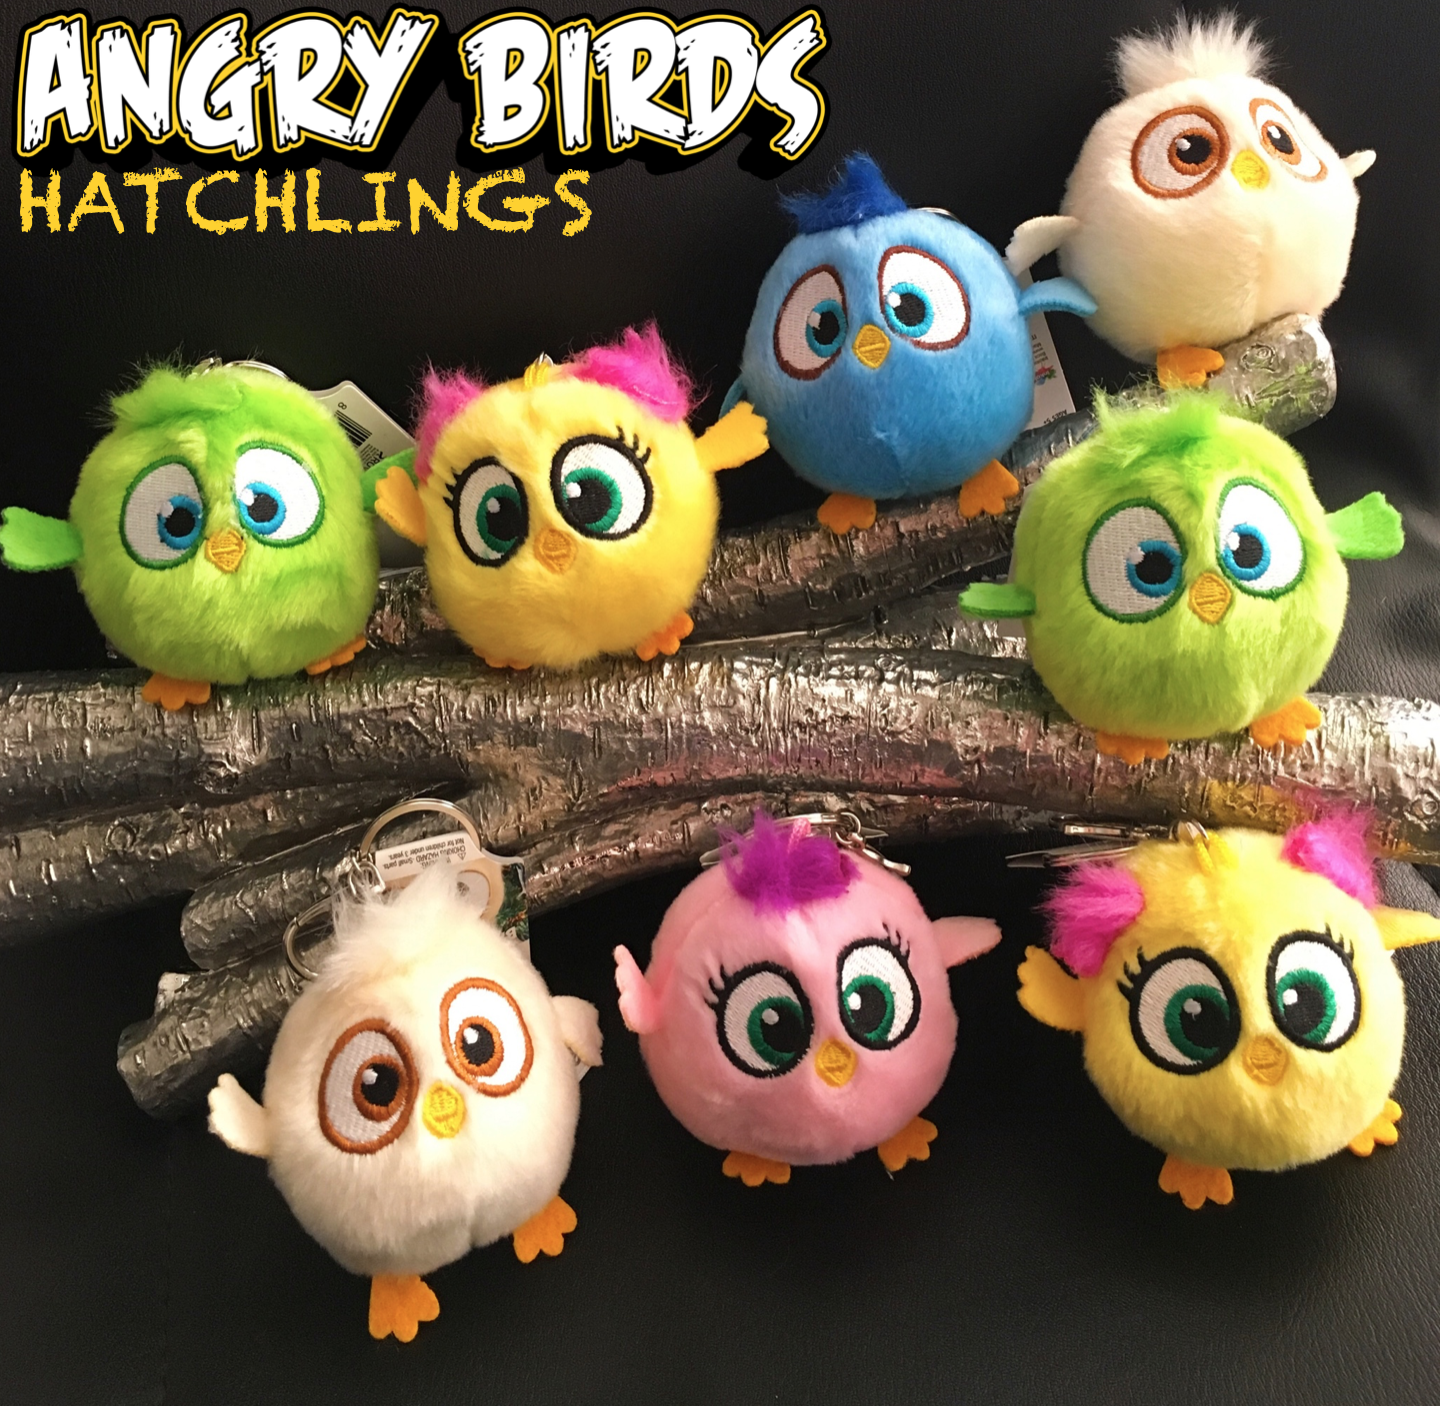 Angry Birds Hatchlings Keychain Pink Lime Green Yellow Blue Tan Bird Plush Toy Ebay